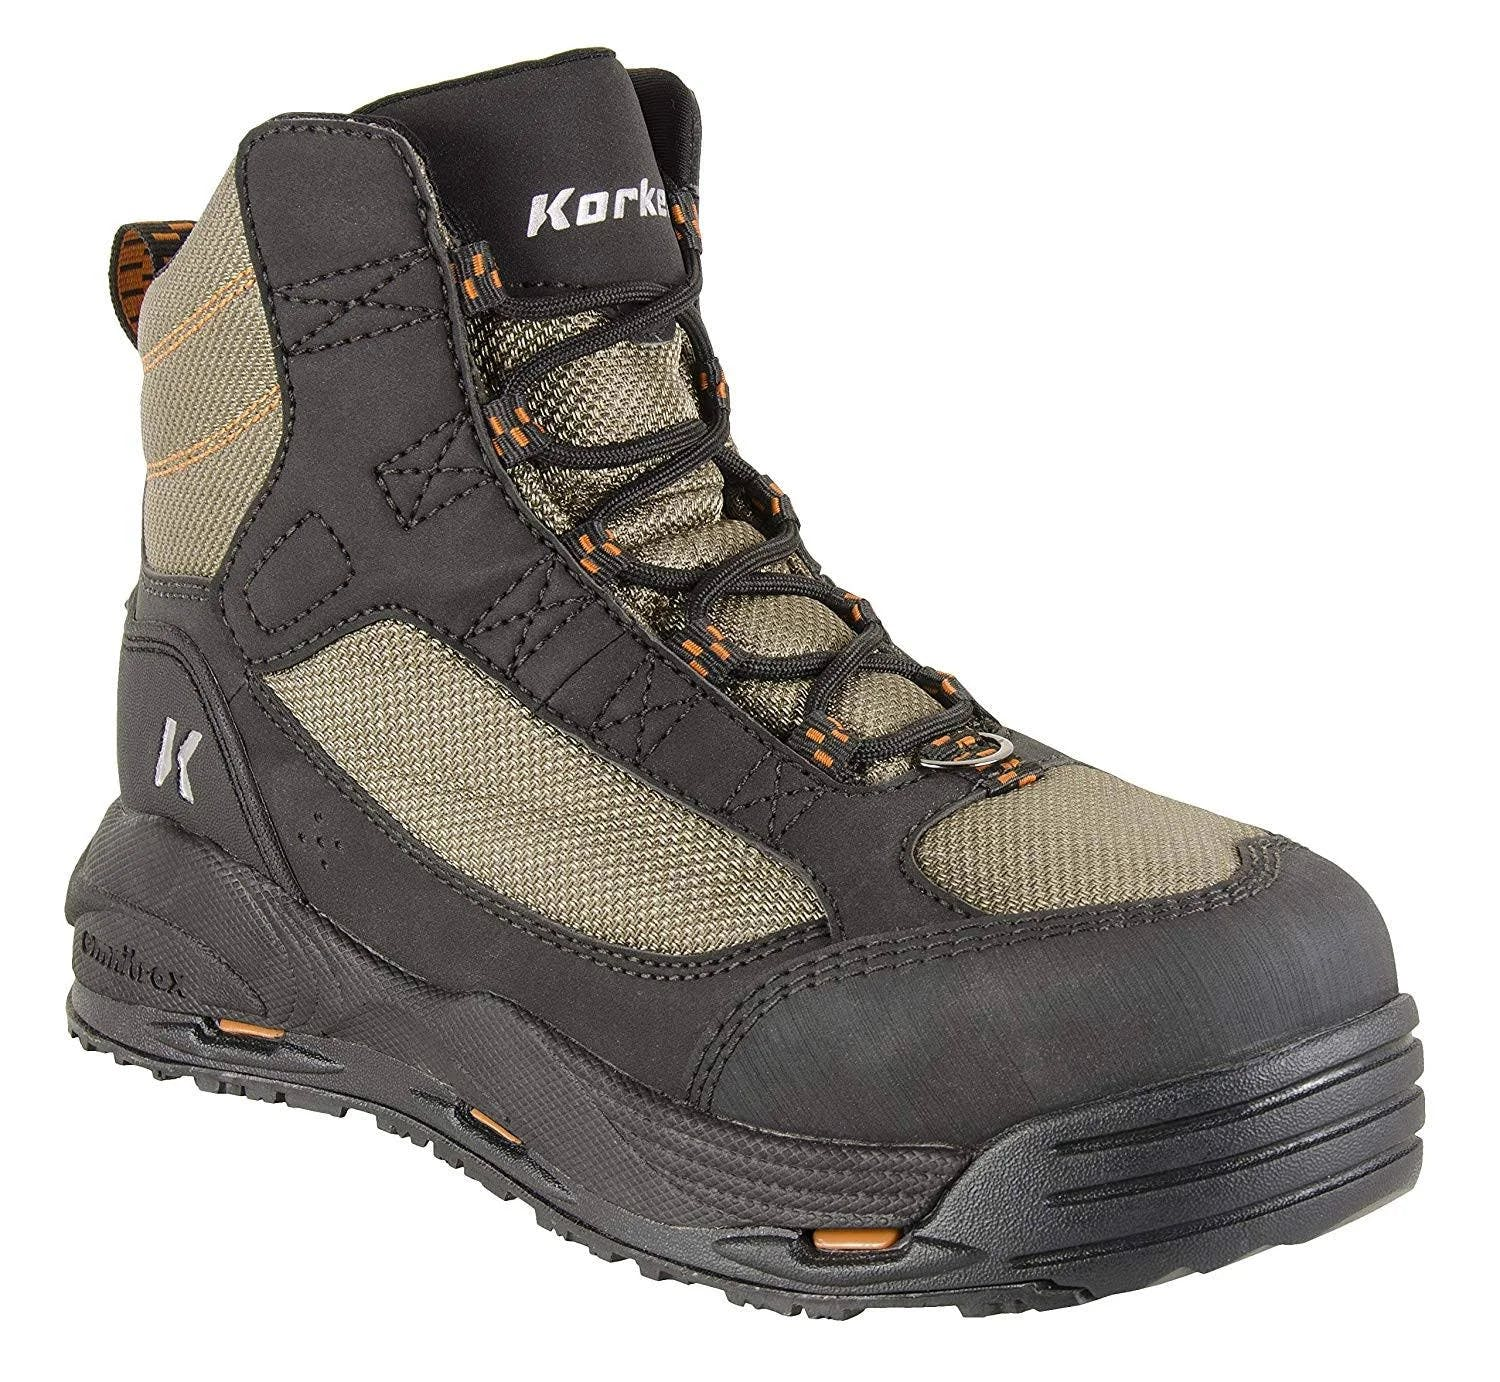 Korkers Greenback Wading Boots, Felt/Kling-On boot_size:12